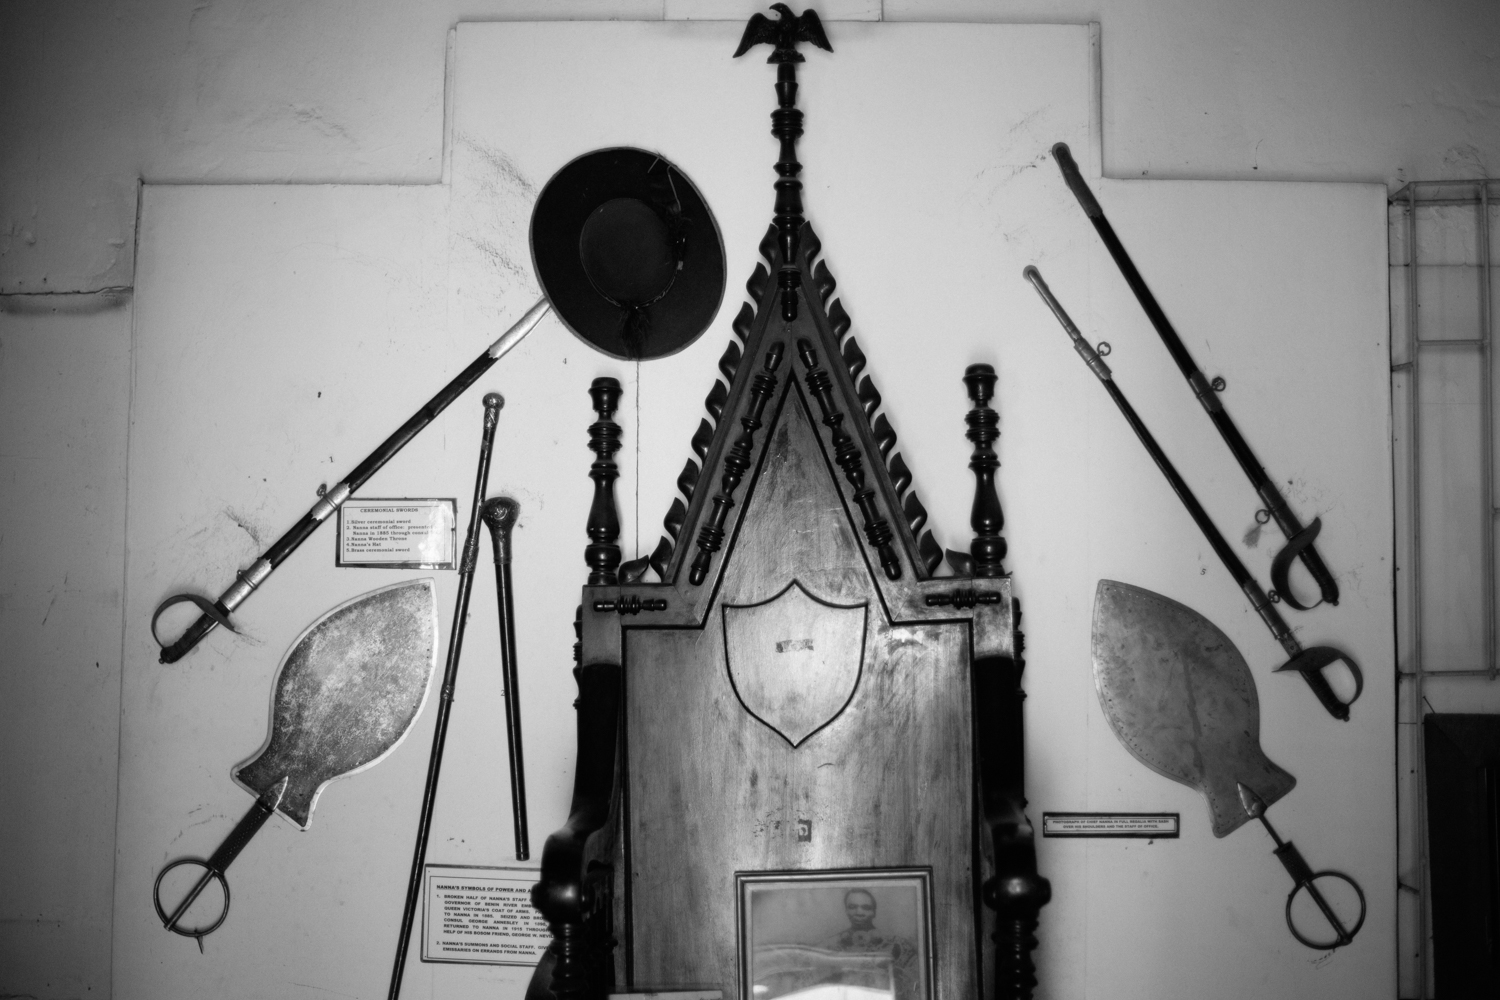 Nanna's Seat with staff and swords he got as gifts hanging on the wall